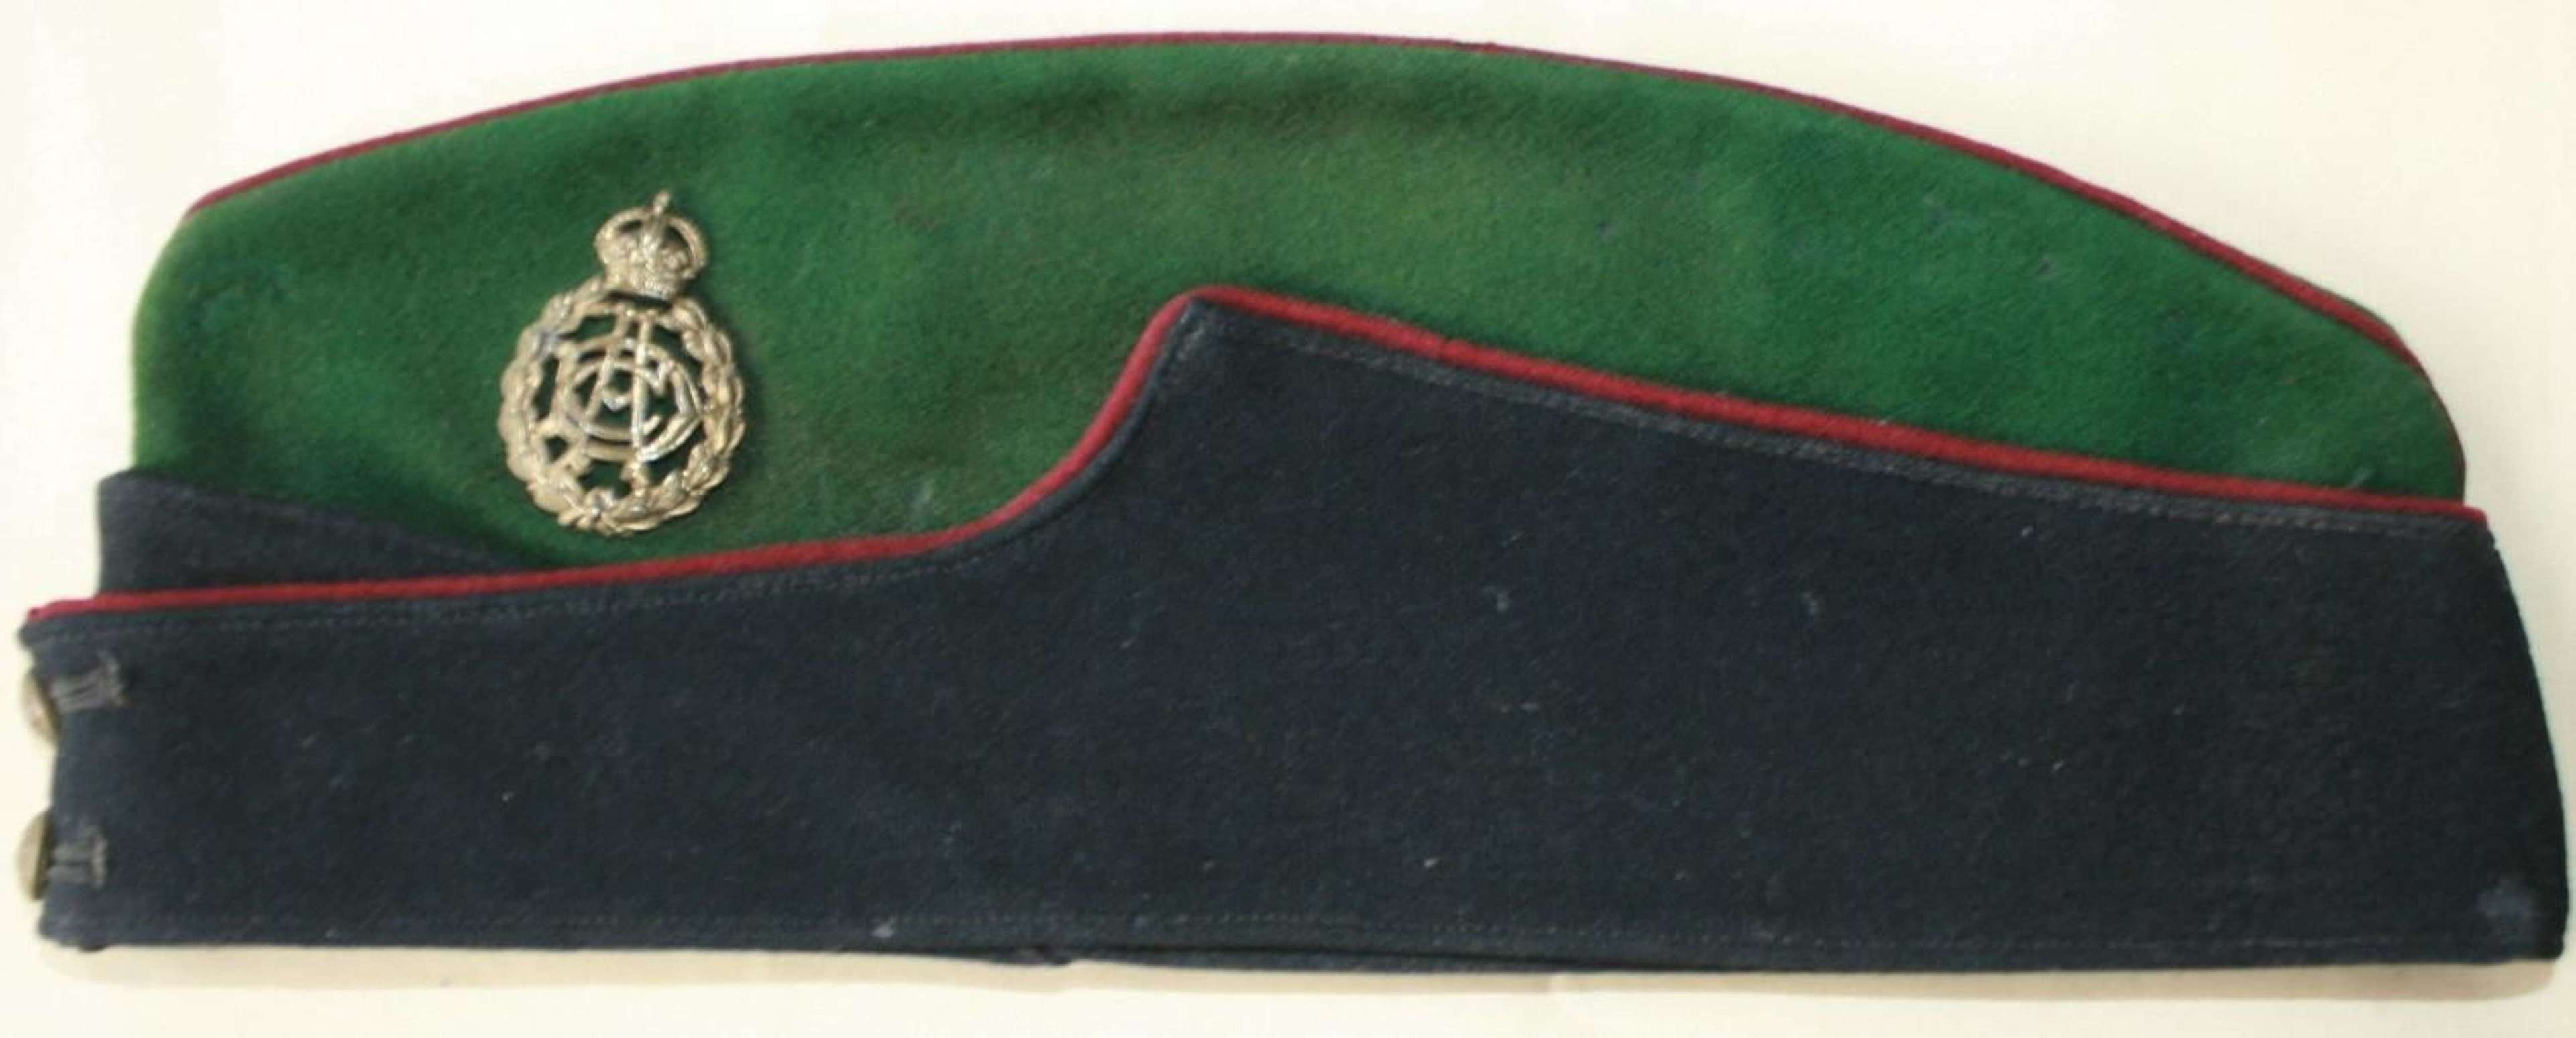 A WWII PERIOD OTHER RANKS ARMY DENTAL CORPS SIDE CAP